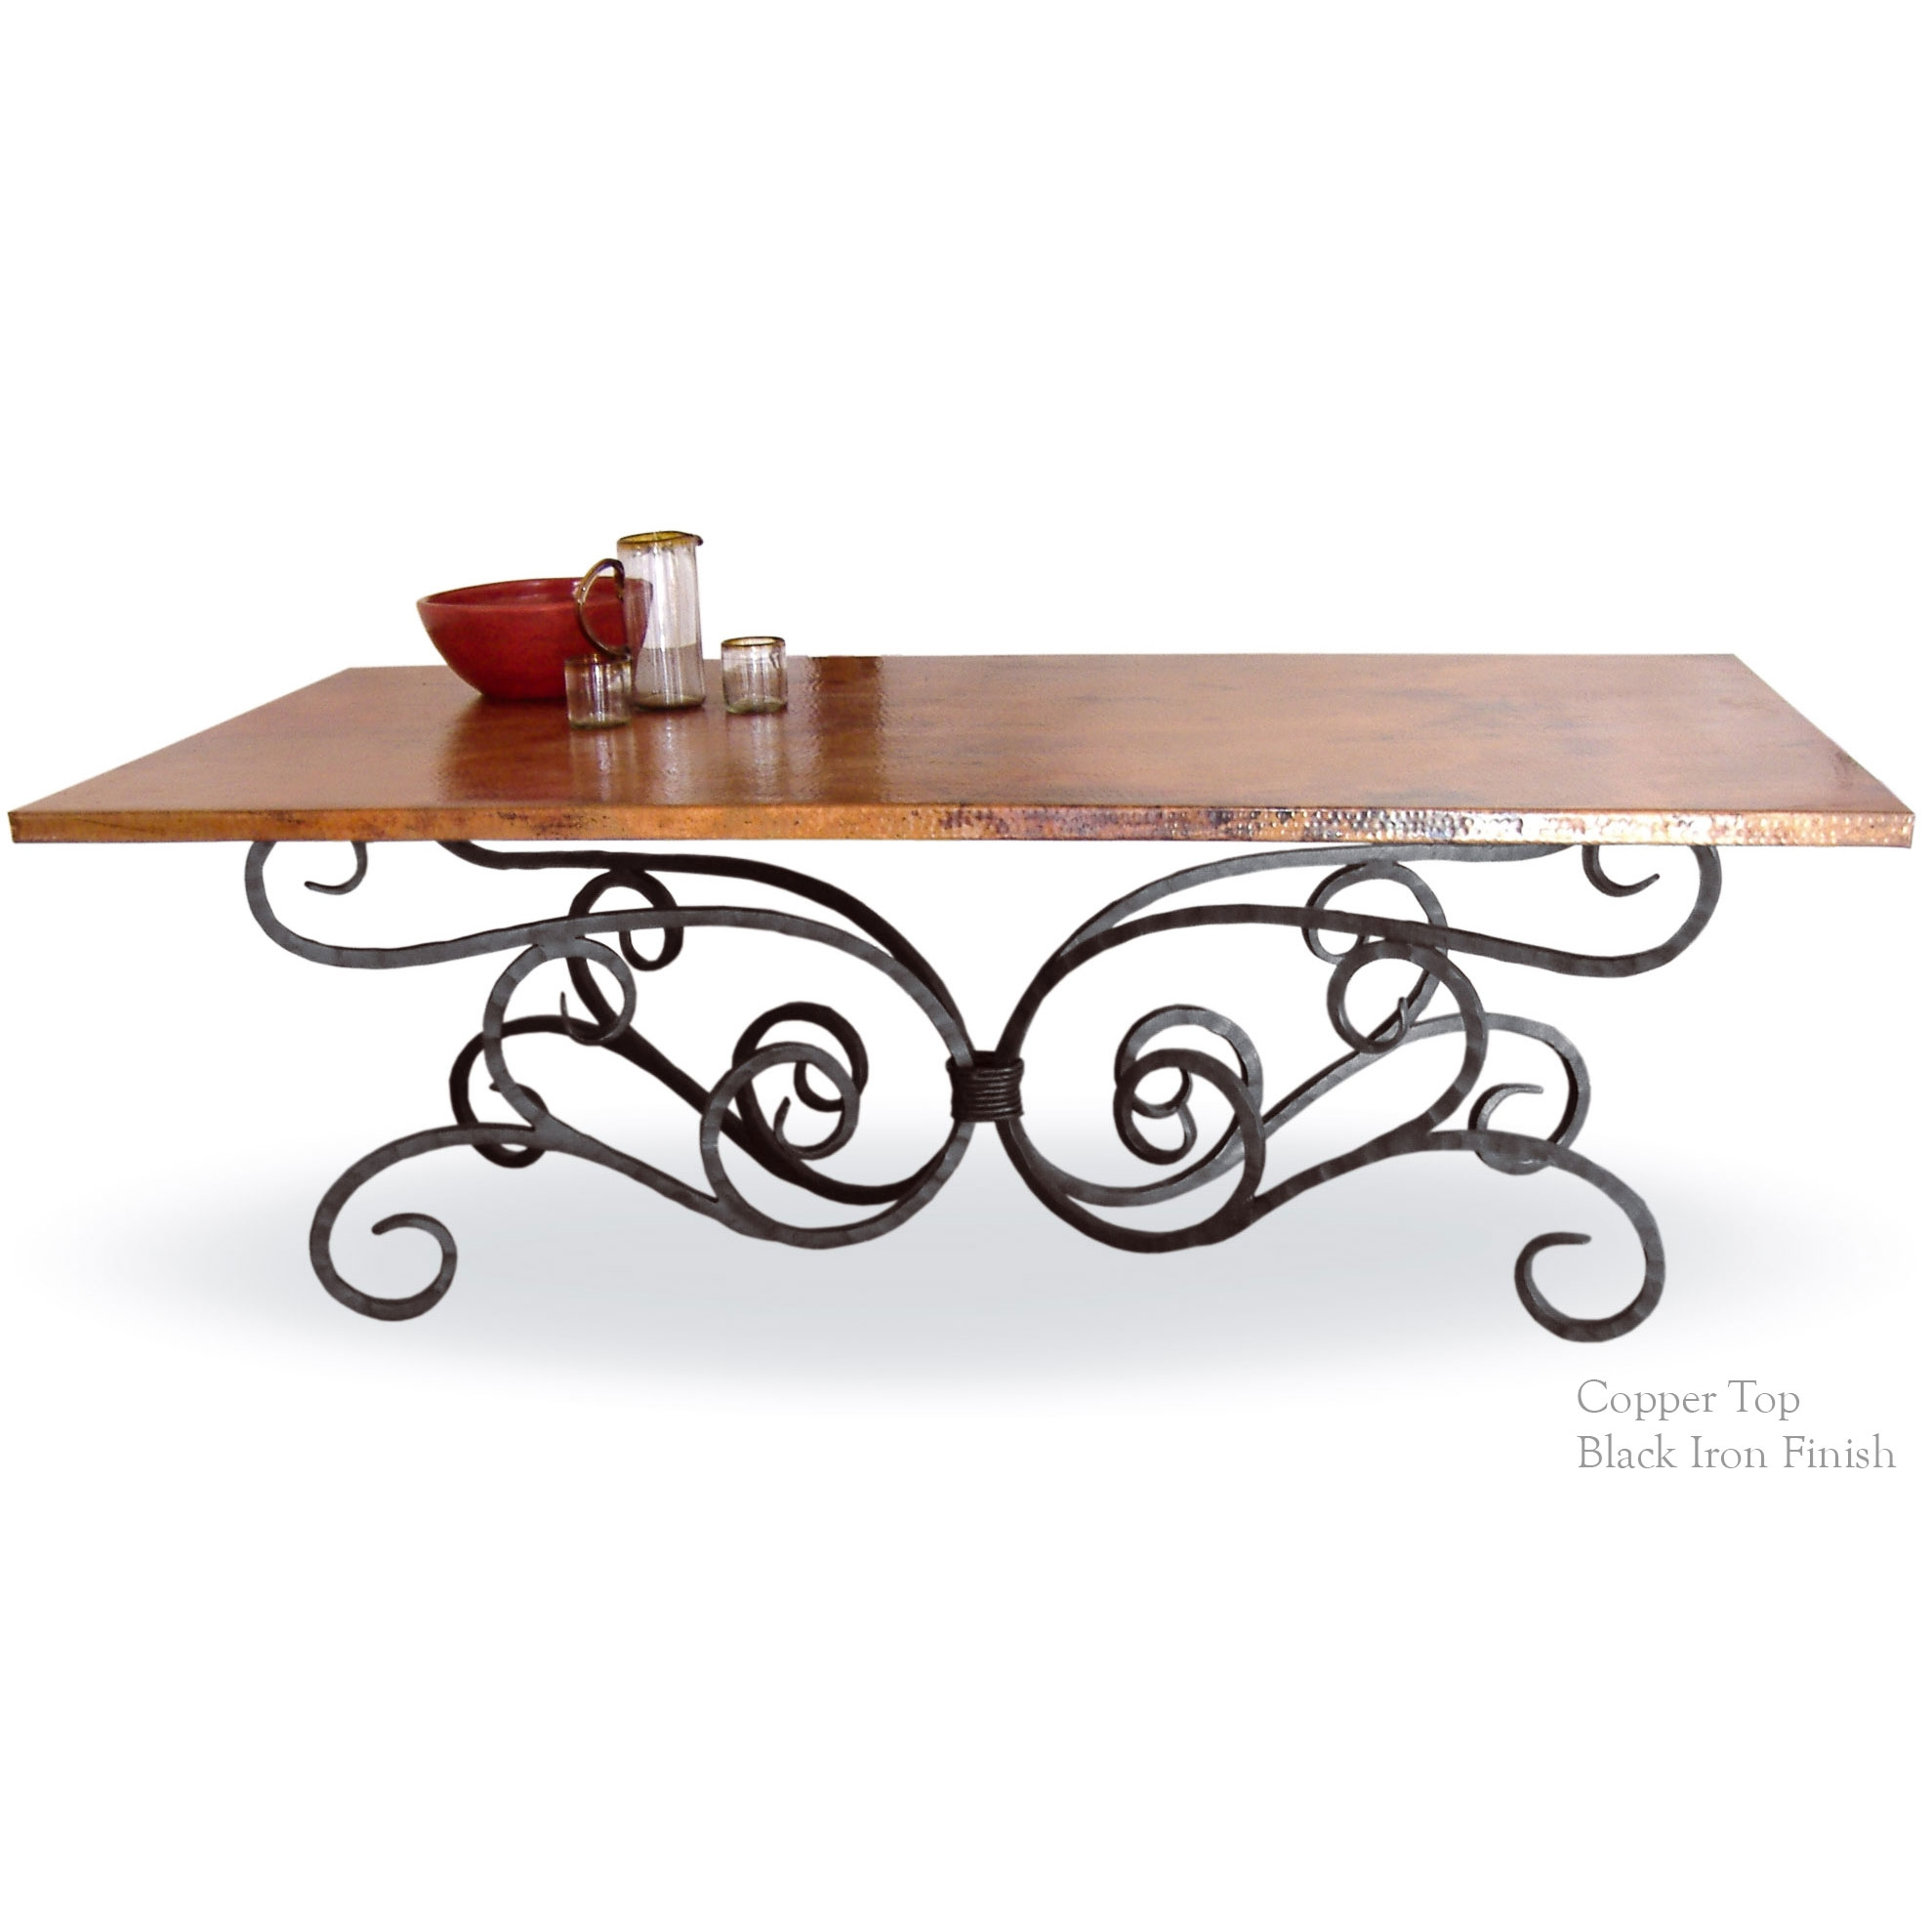 Alexander Iron Dining Table Base - Black metal dining table base